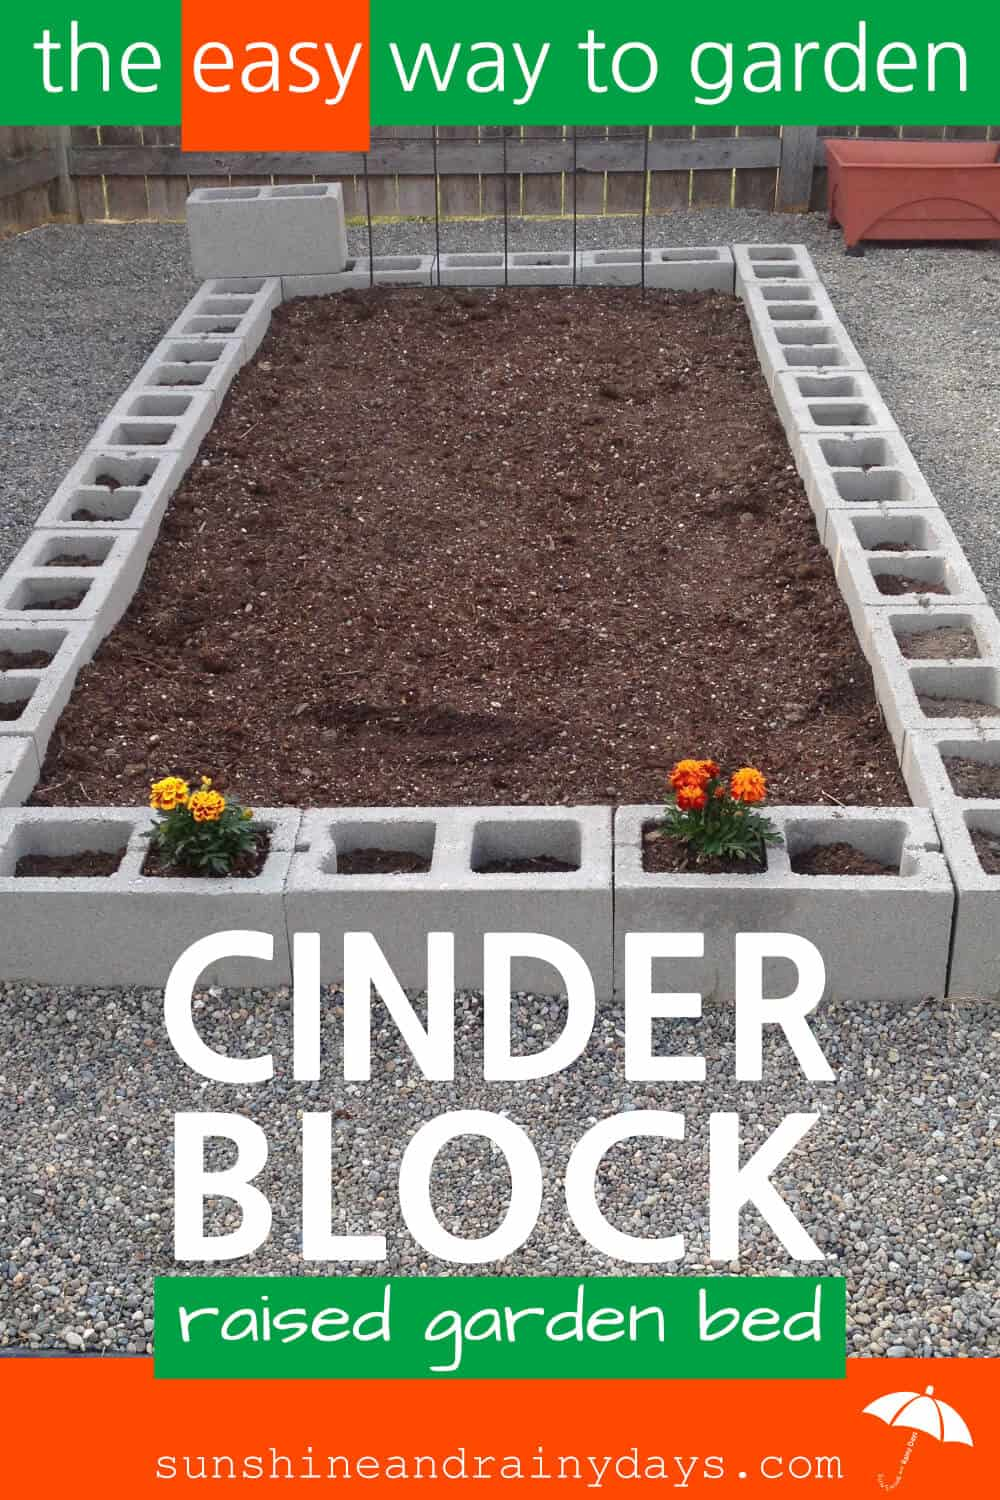 There's nothing like growing your own food! A Cinder Block Raised Garden Bed is easy to build and will give you years of use! Need a tomato? Go pick one! Green beans for dinner? You got that too! Cinder Block Raised Garden Bed   Cinder Block Garden   Raised Garden Beds   #raisedgardenbeds #raisedgarden #cinderblocks #SARD